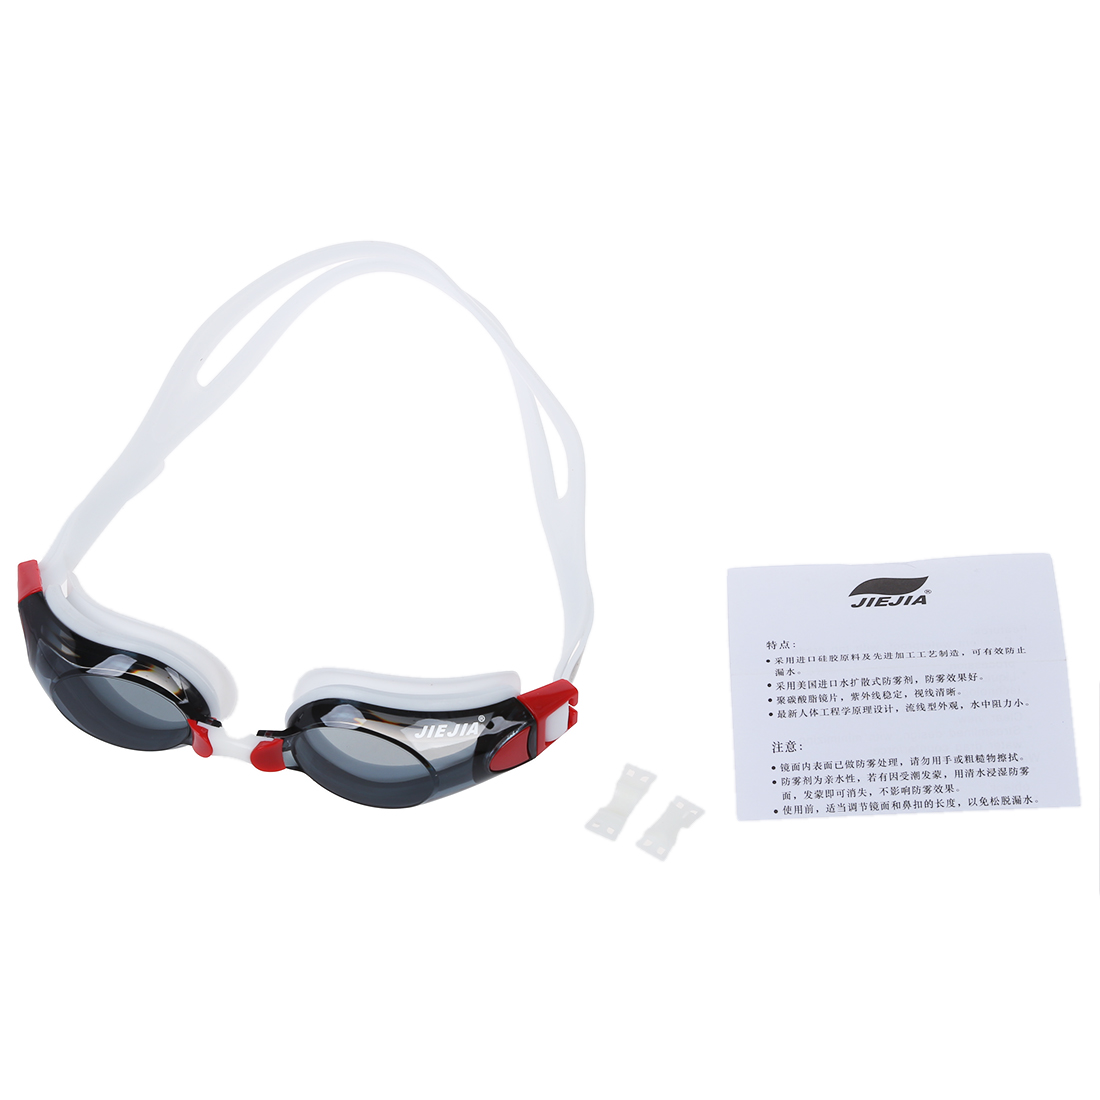 Adult Anti-fog Swimming Goggles Glasses / Streamlined Appearance, PC Lens Offer UV Protection and Give Clear Vision - Red&Black